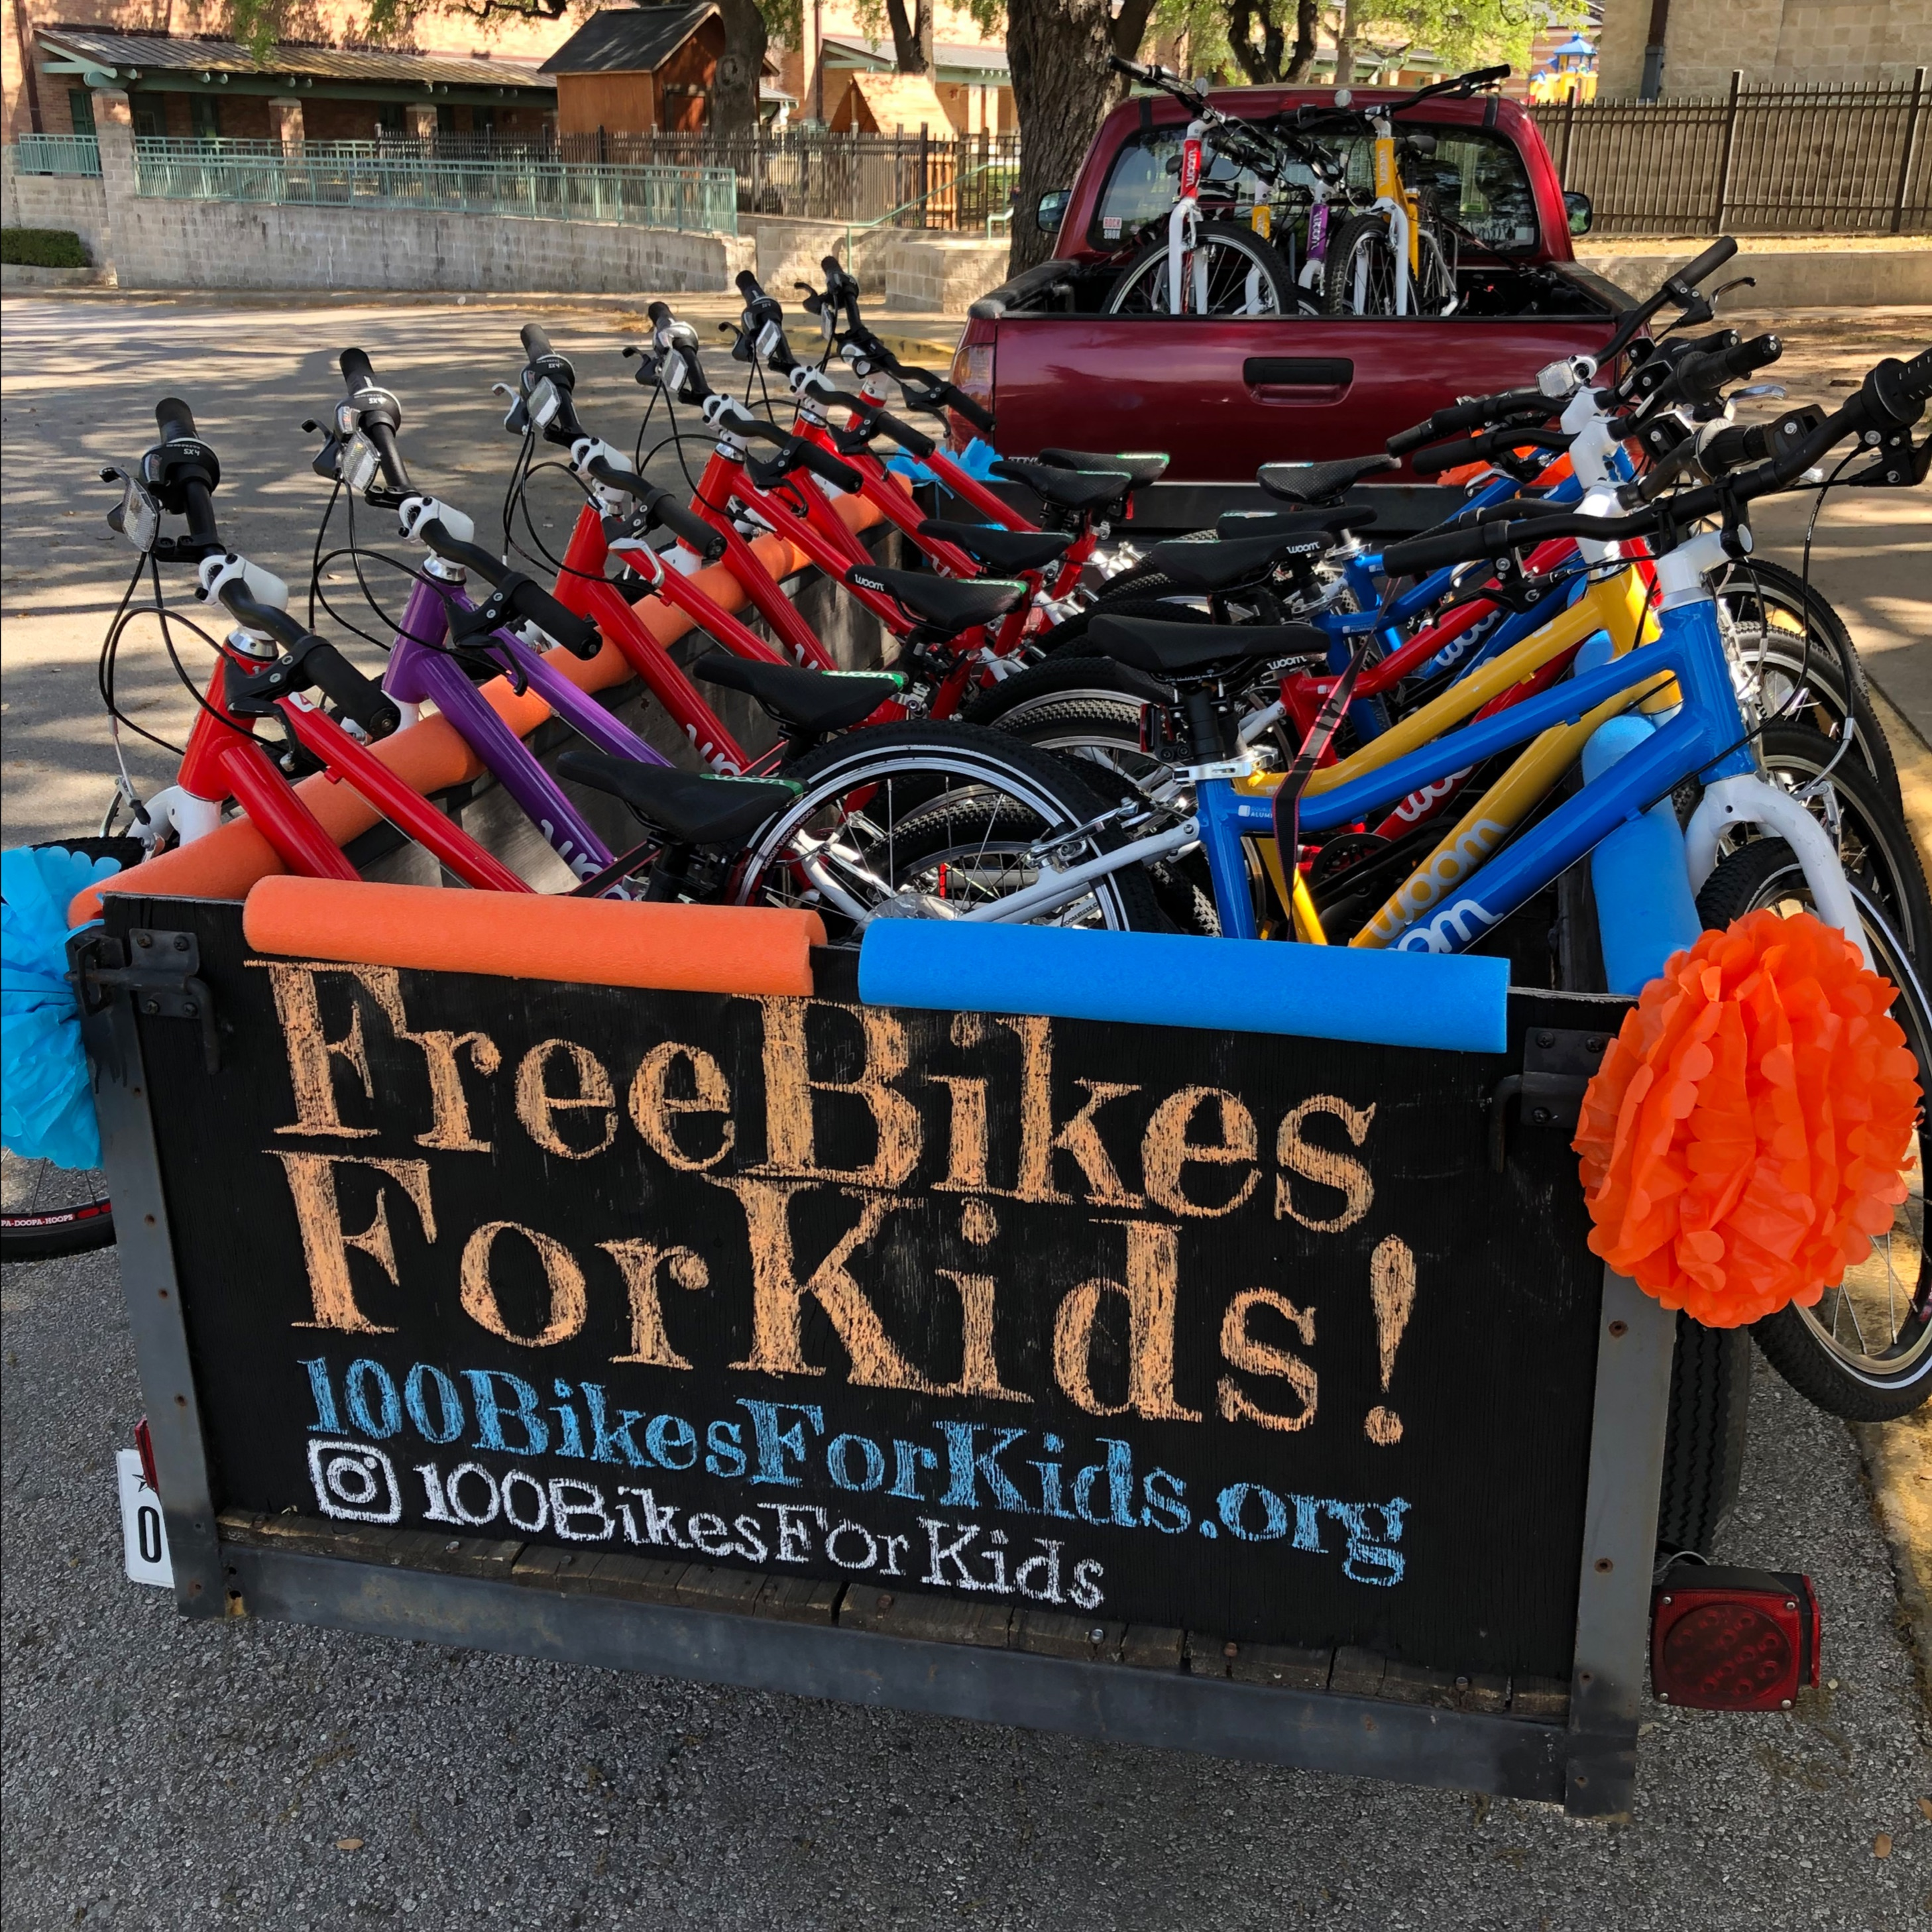 """A maroon truck and trailer is filled with different color woom bikes. The back of the trailer has a sign that reads, """"Free Bikes For Kids! 100BikesForKids.org Instagram 100BikesForKids."""""""